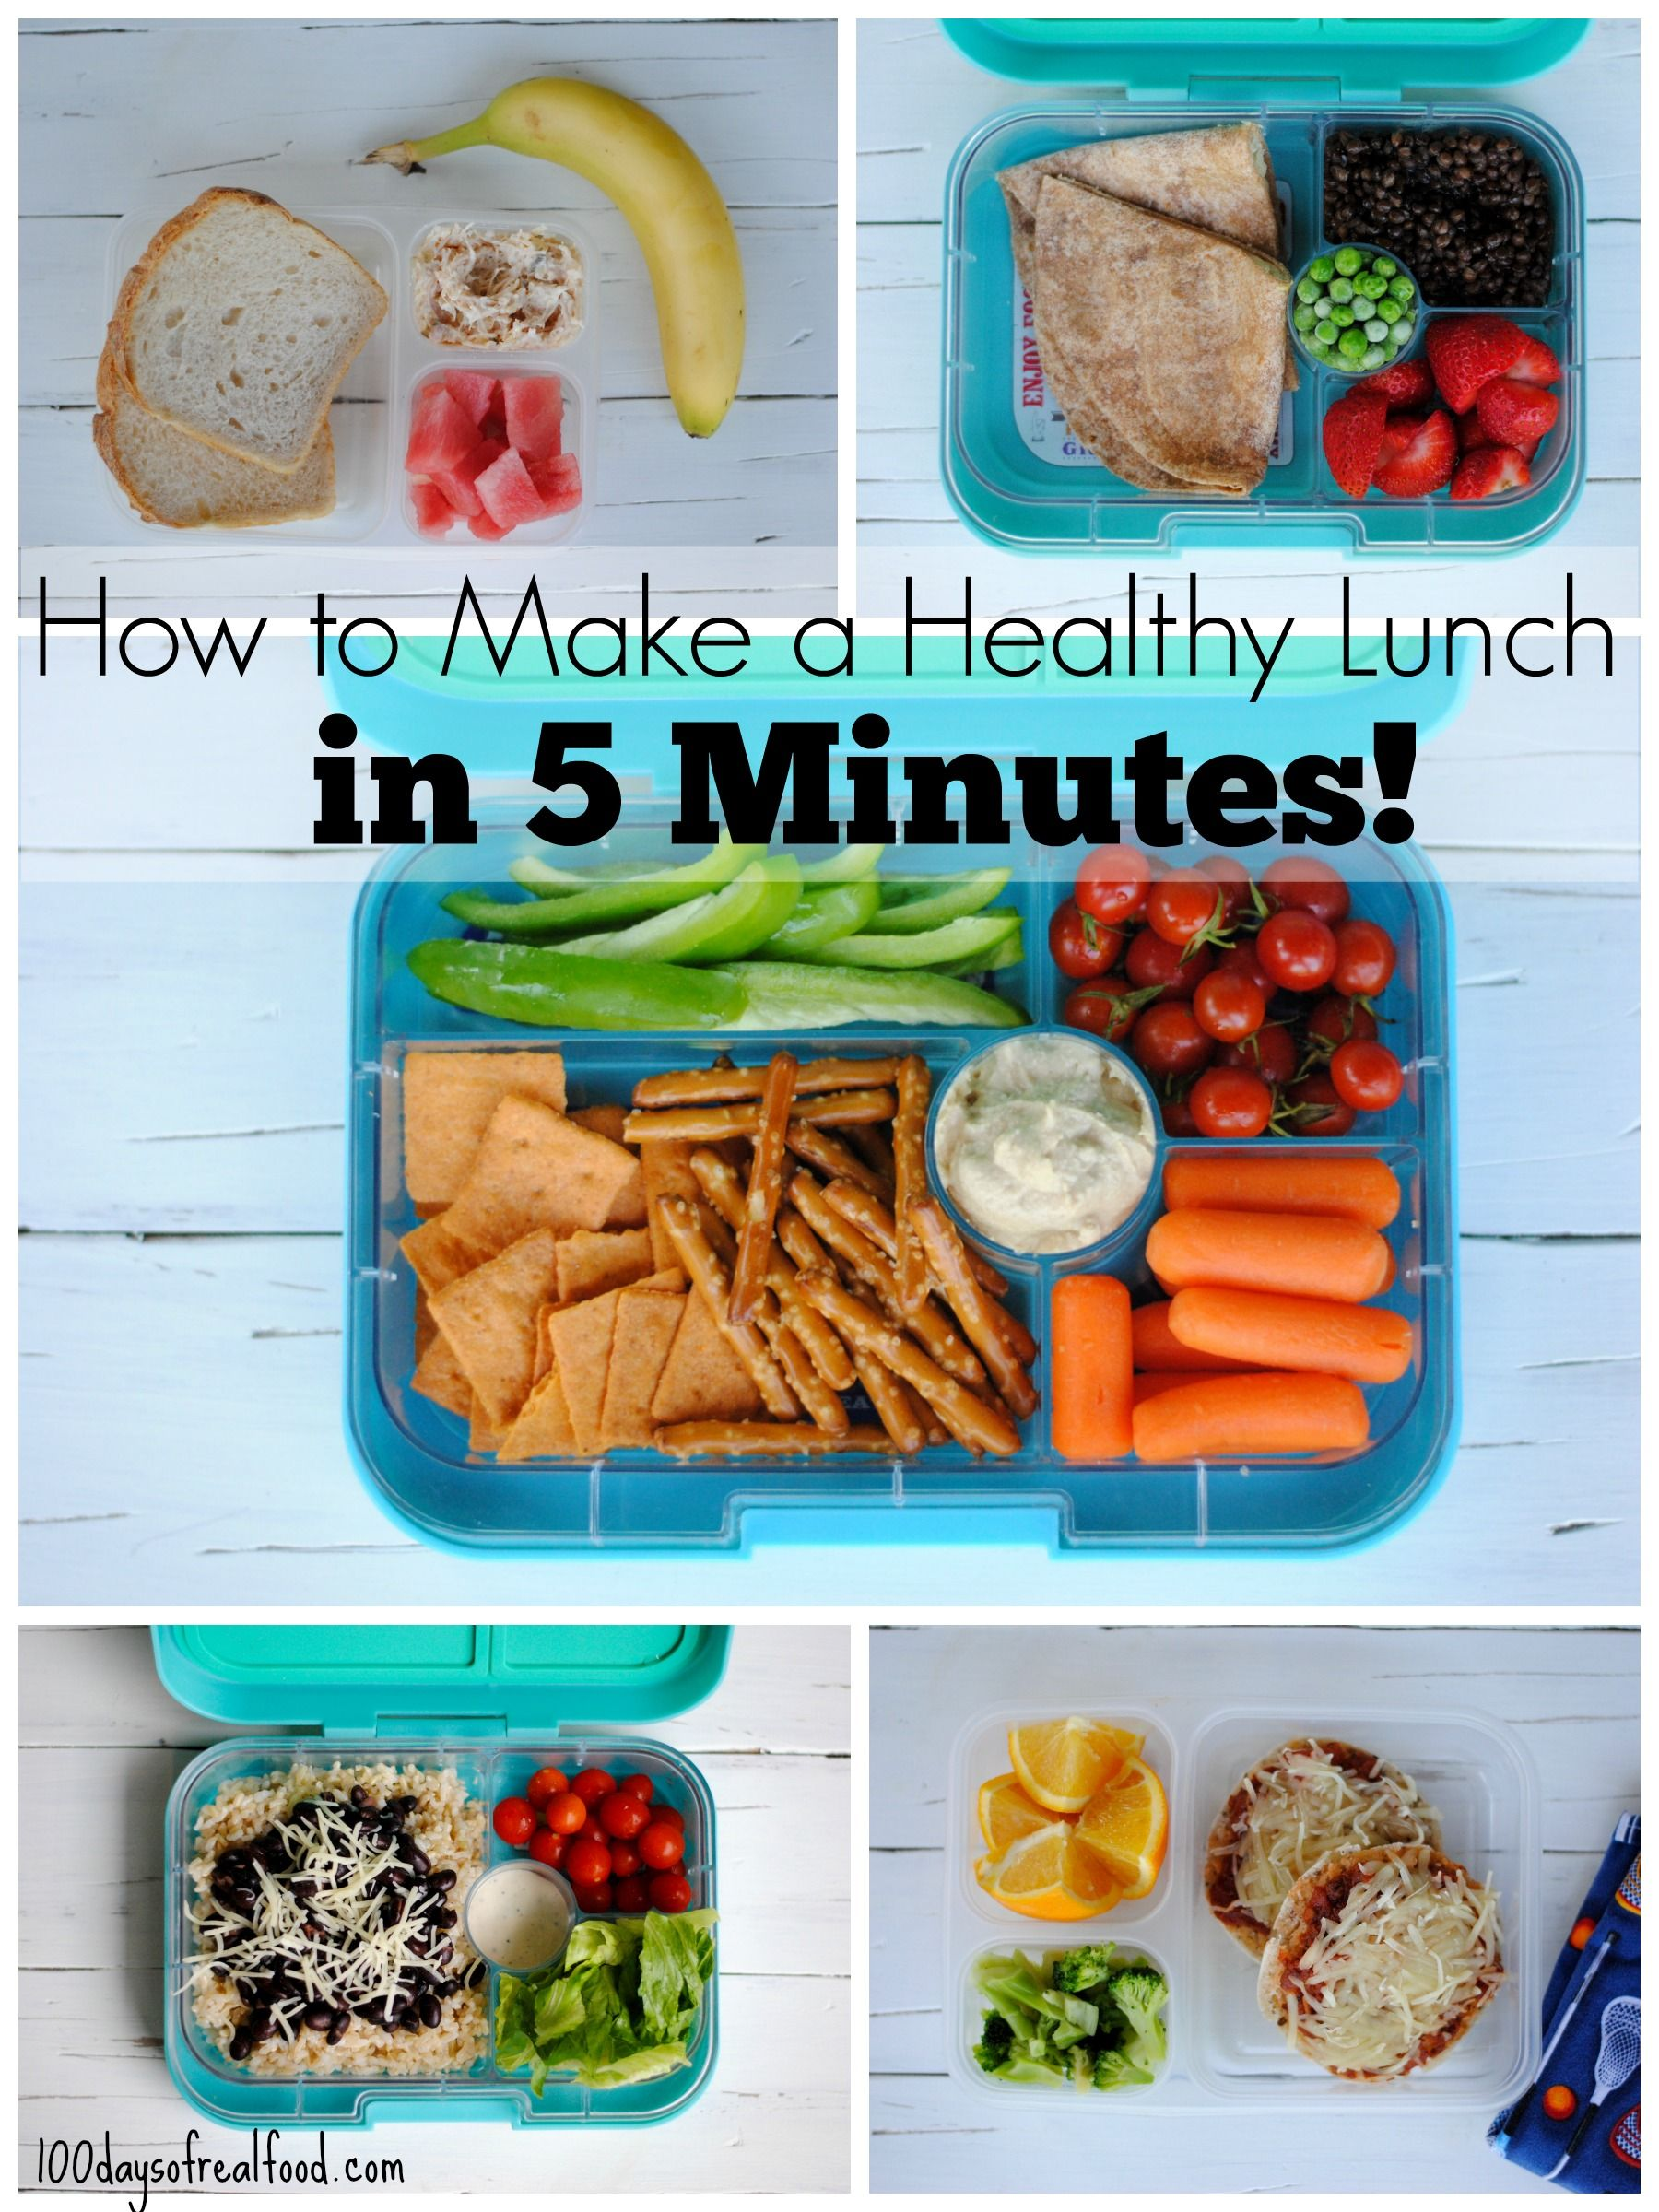 5 Healthy Packed Lunches In 5 Minutes